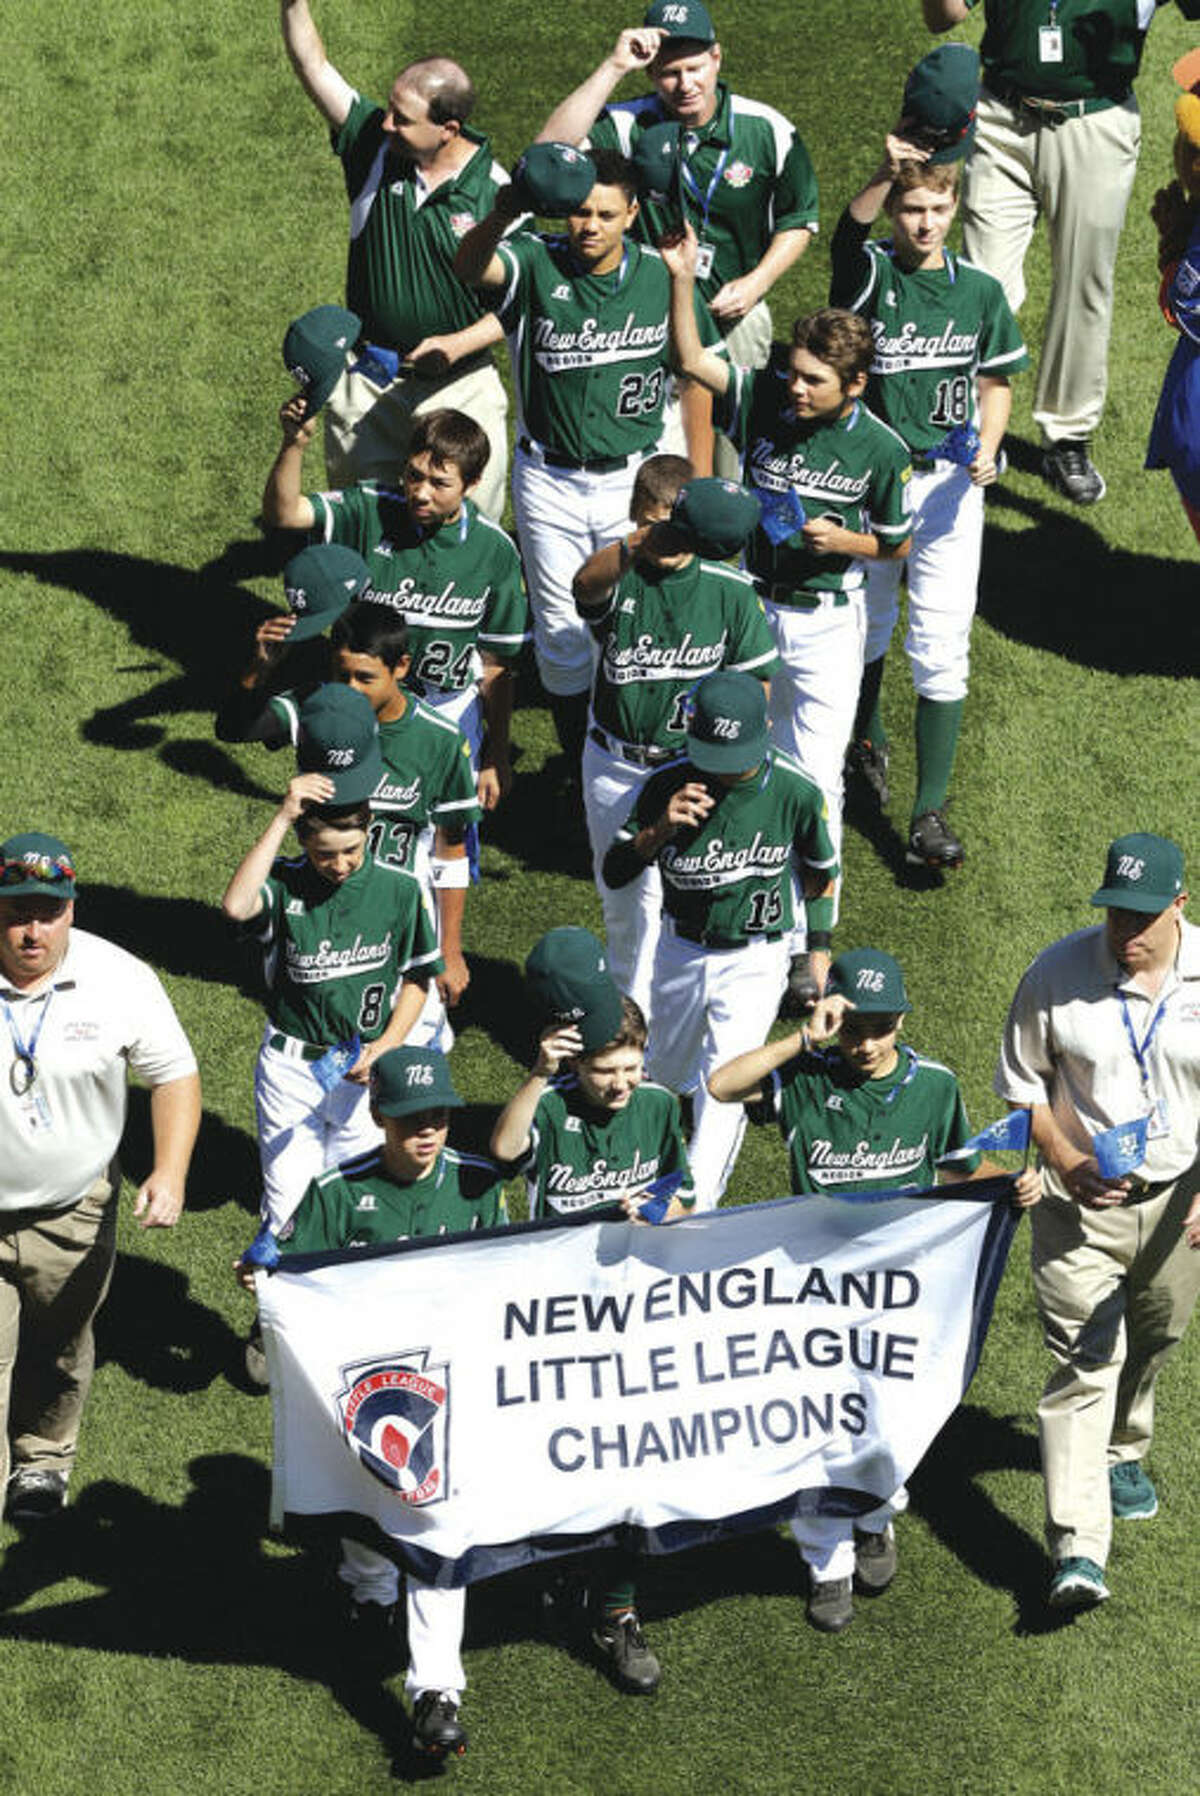 AP photo The Westport team participates in Thursday's opening ceremony for the 2013 Little League World Series in South Williamsport, Pa. For two families, the Browns and the Azadians, the hoopla has a familiar ring.